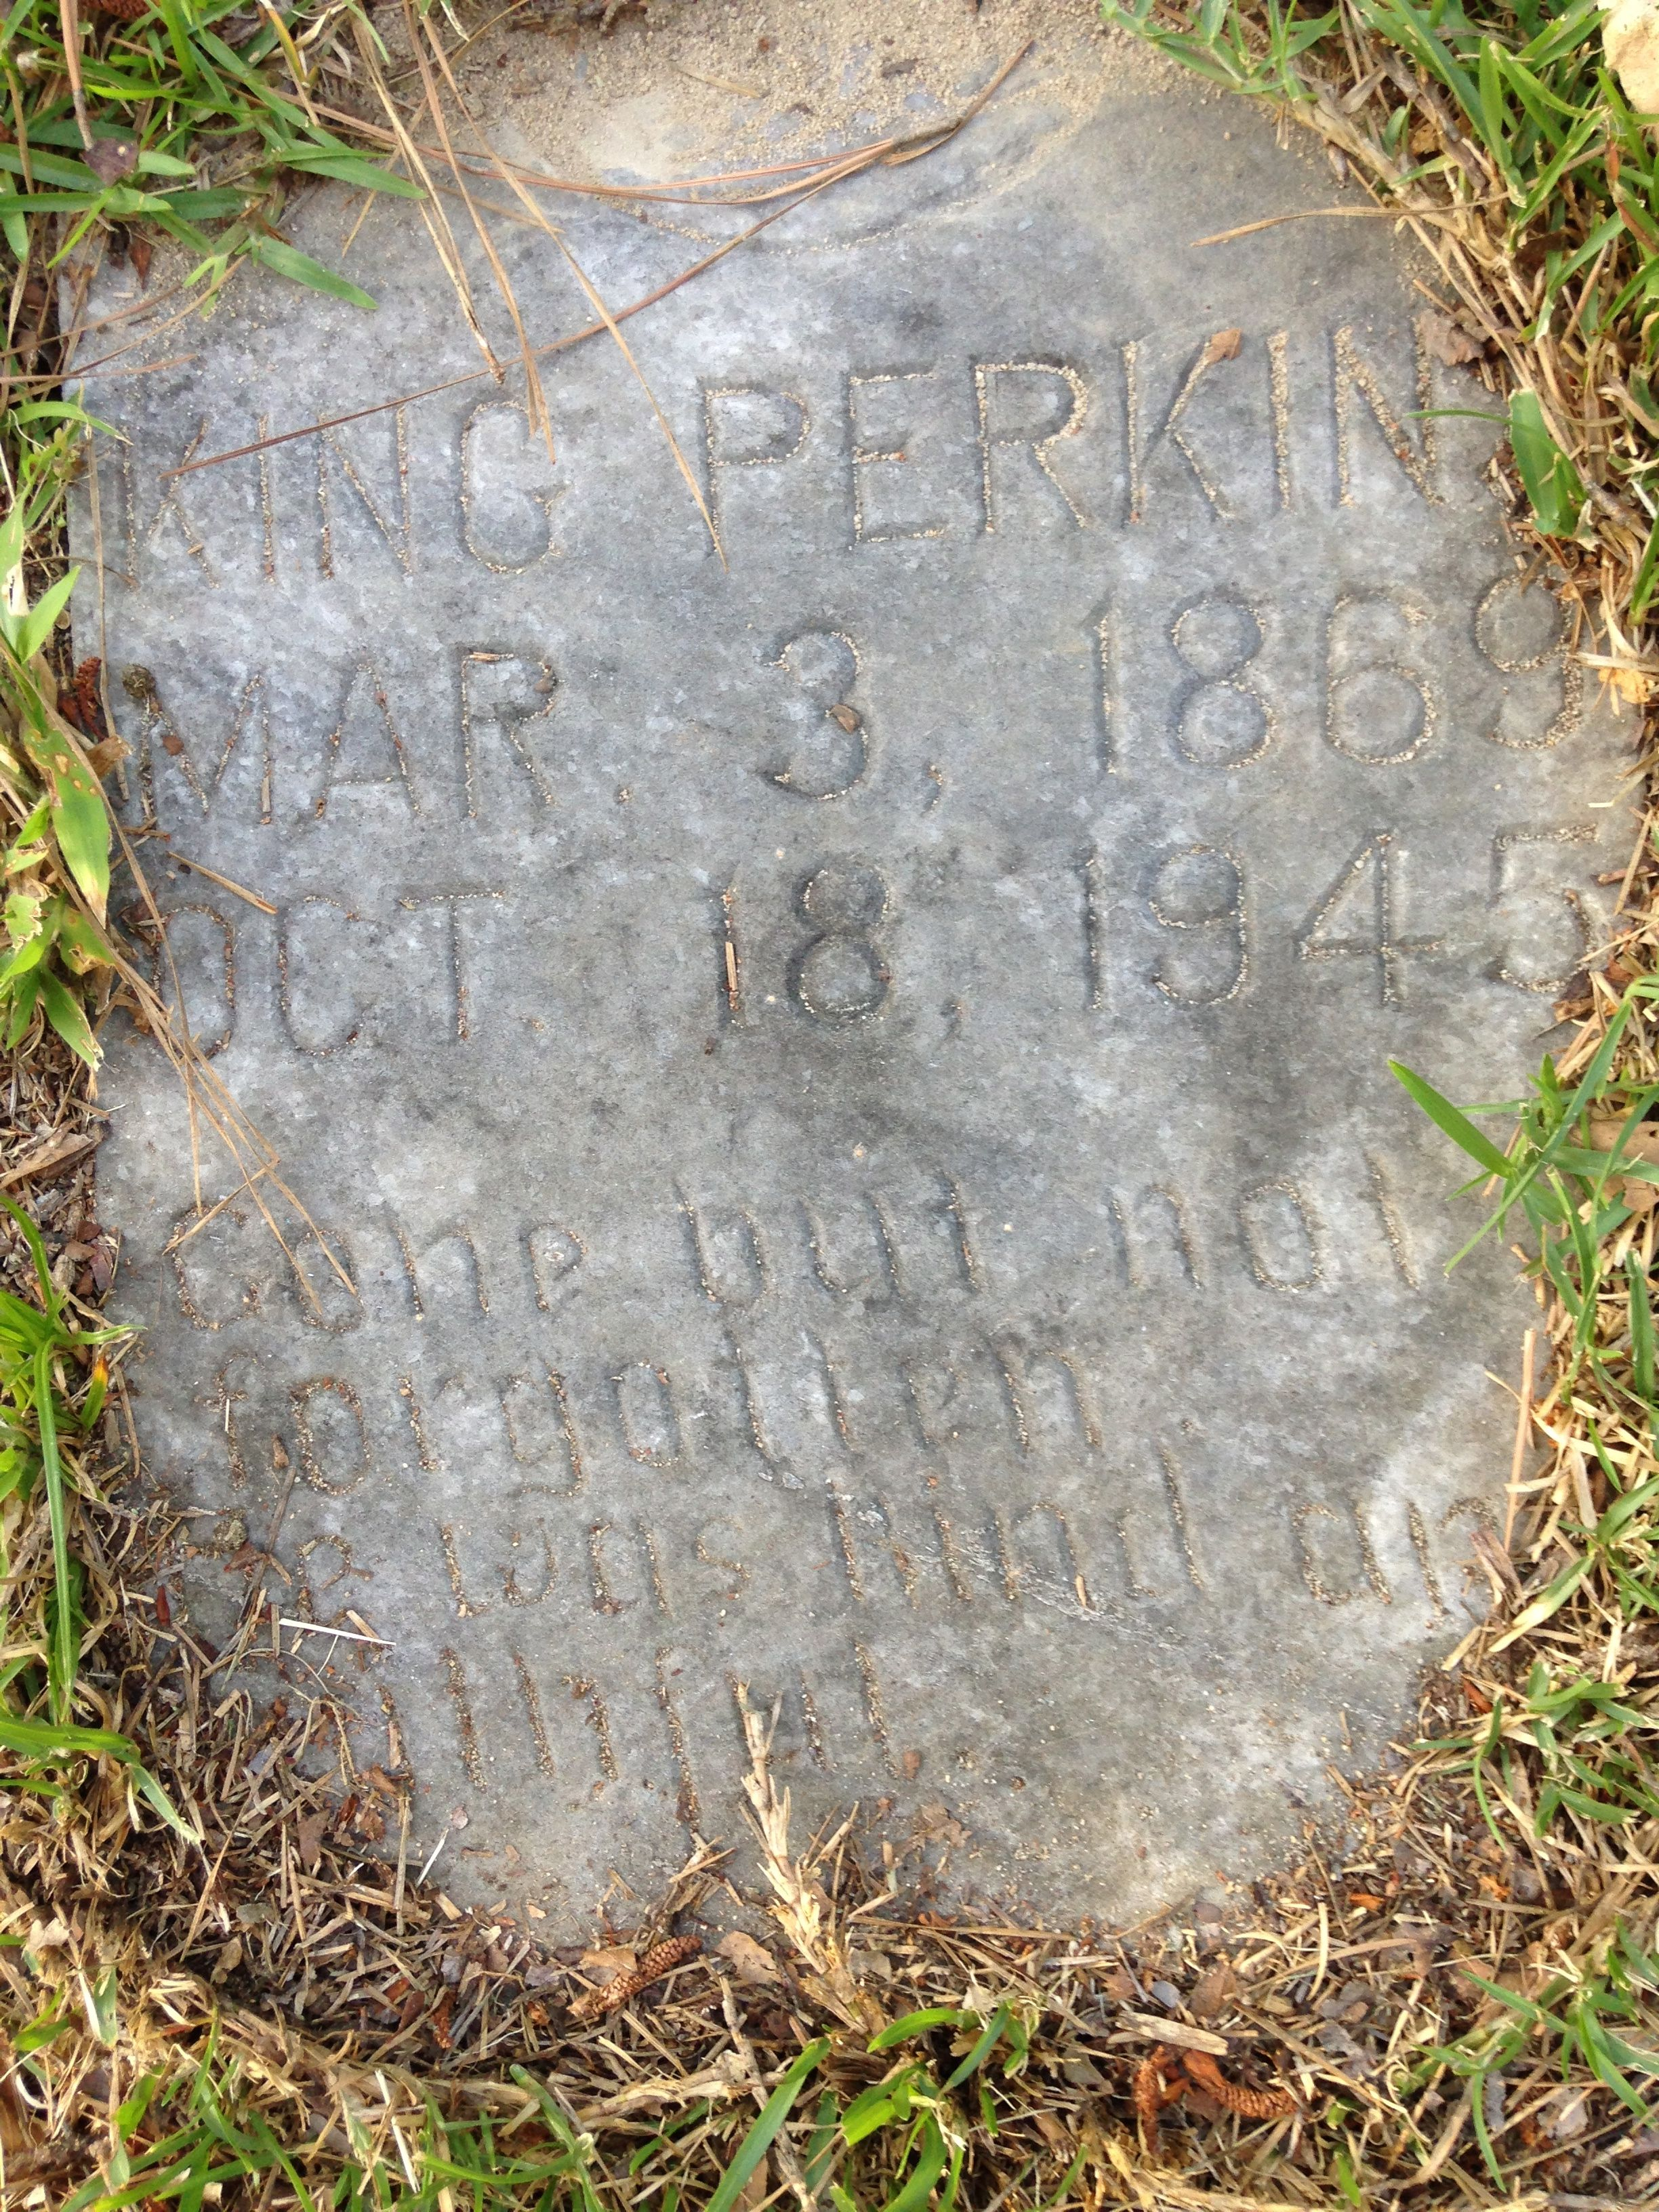 The grave of King Perkins, Jr., son of King, brother of Edward.